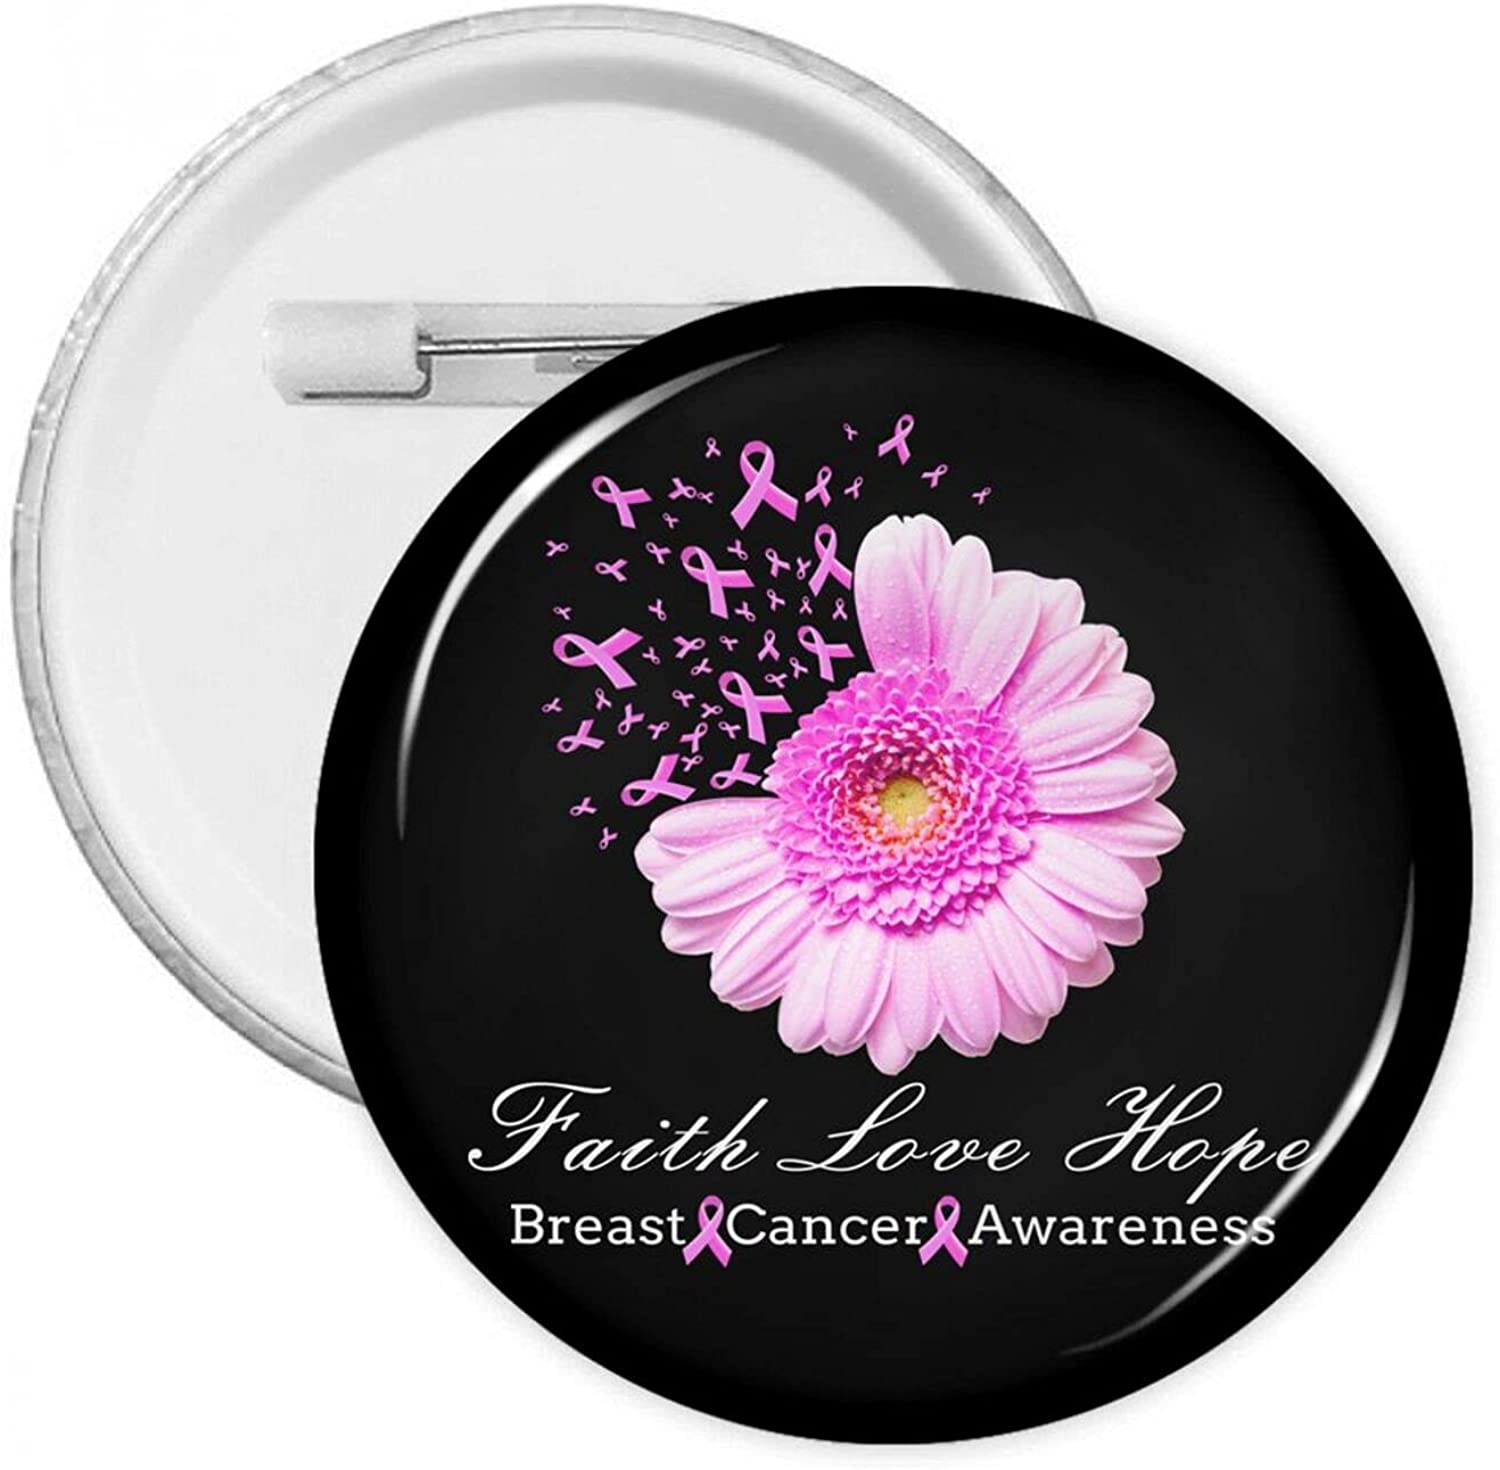 Faith Love Hope Breast Cancer Badges Round P Awareness-4 40% OFF Cheap Sale trend rank Button